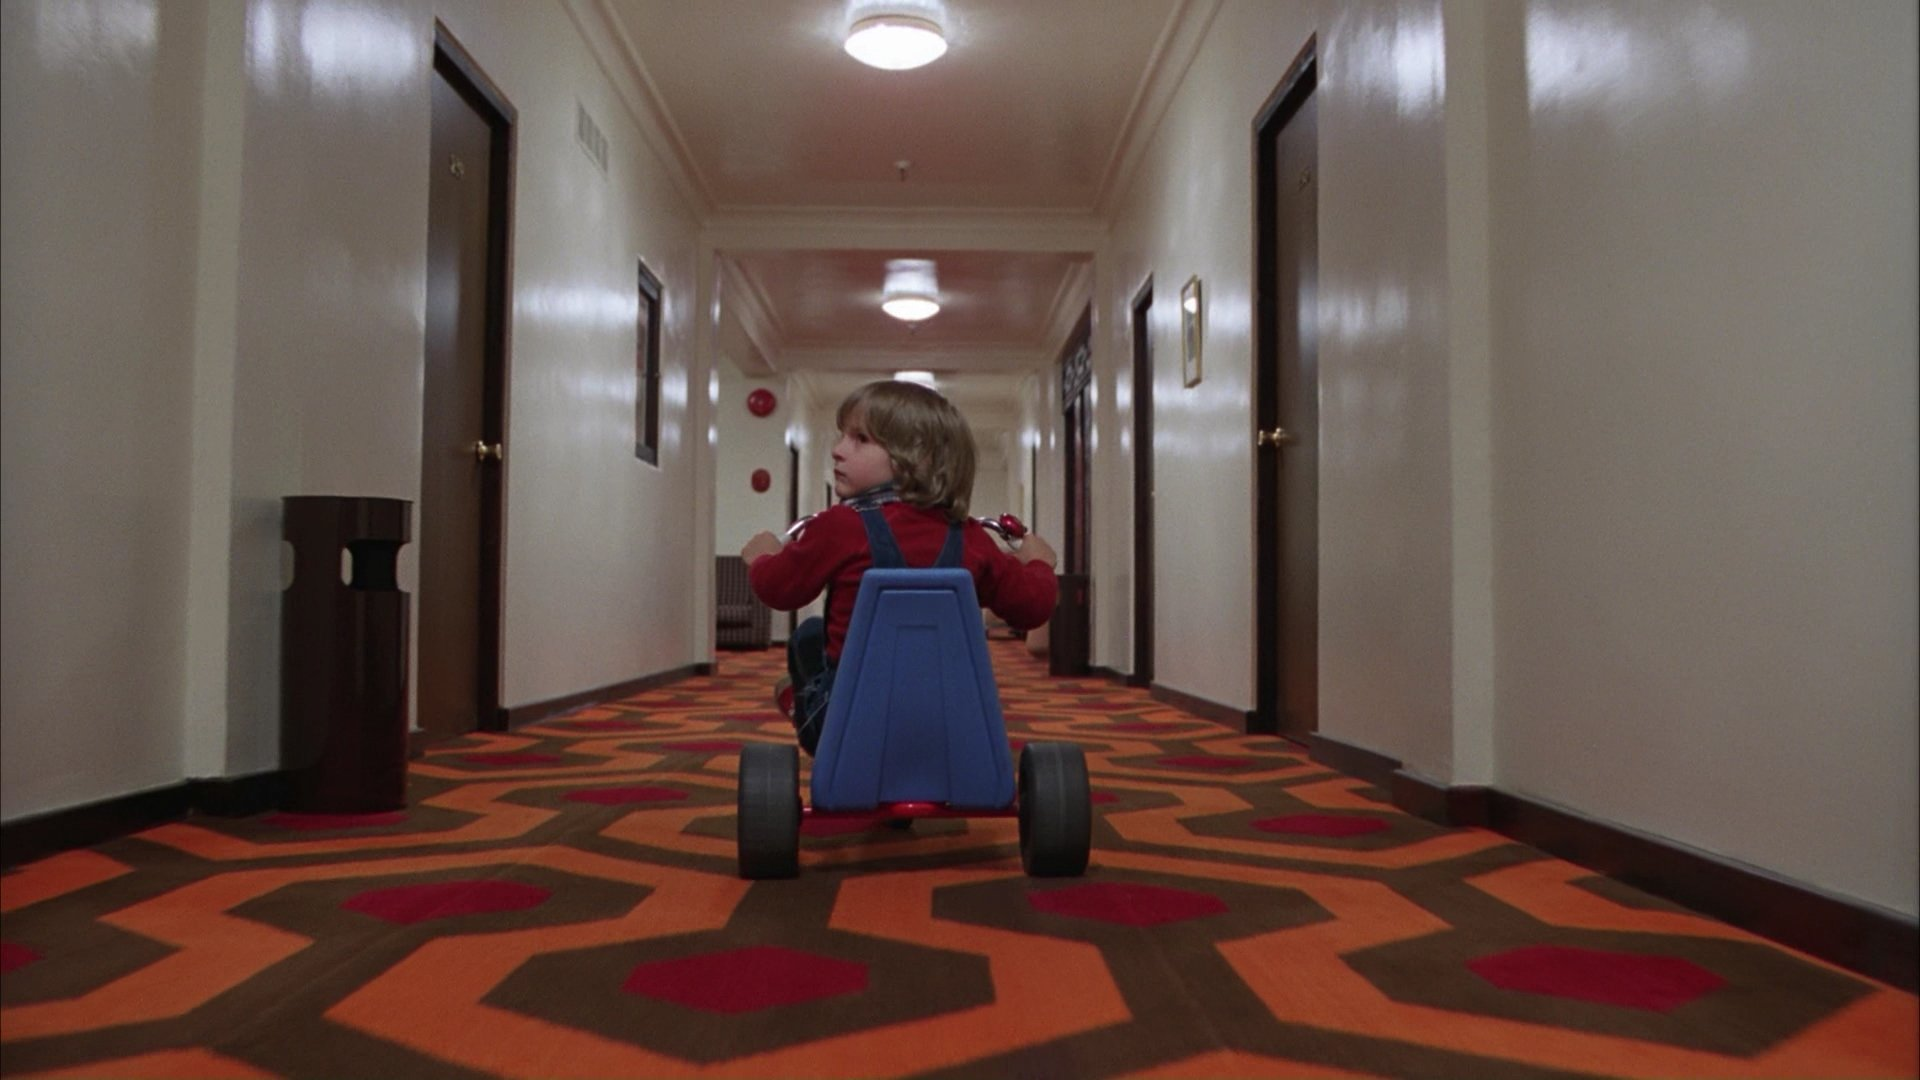 Interesting technical photography aspects of shooting The Shining